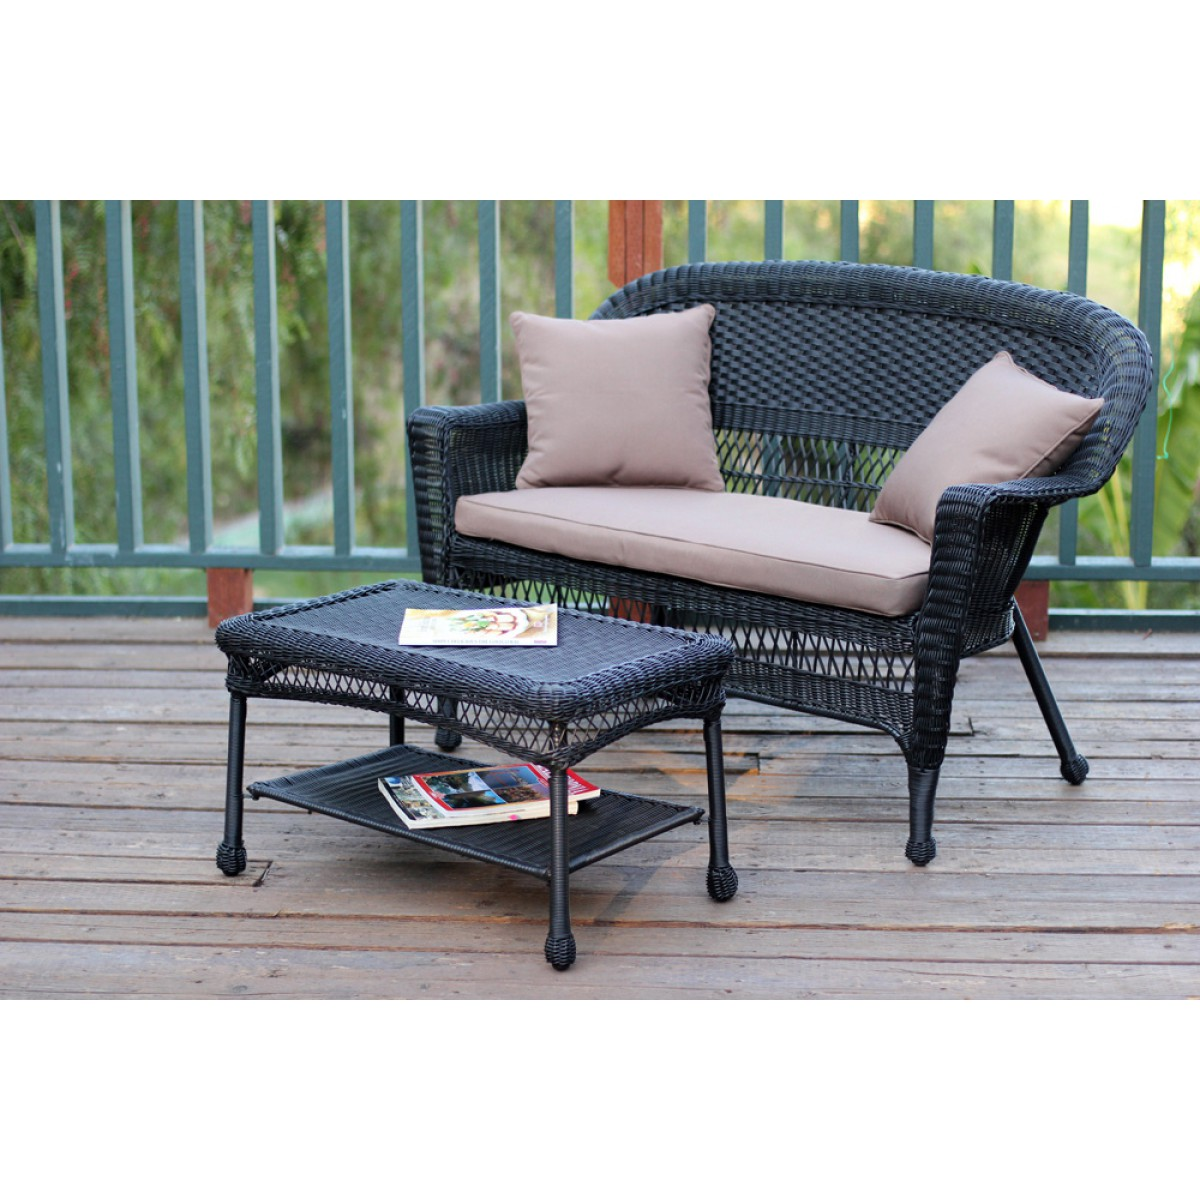 Black Wicker Coffee Table: Black Wicker Patio Love Seat And Coffee Table Set With